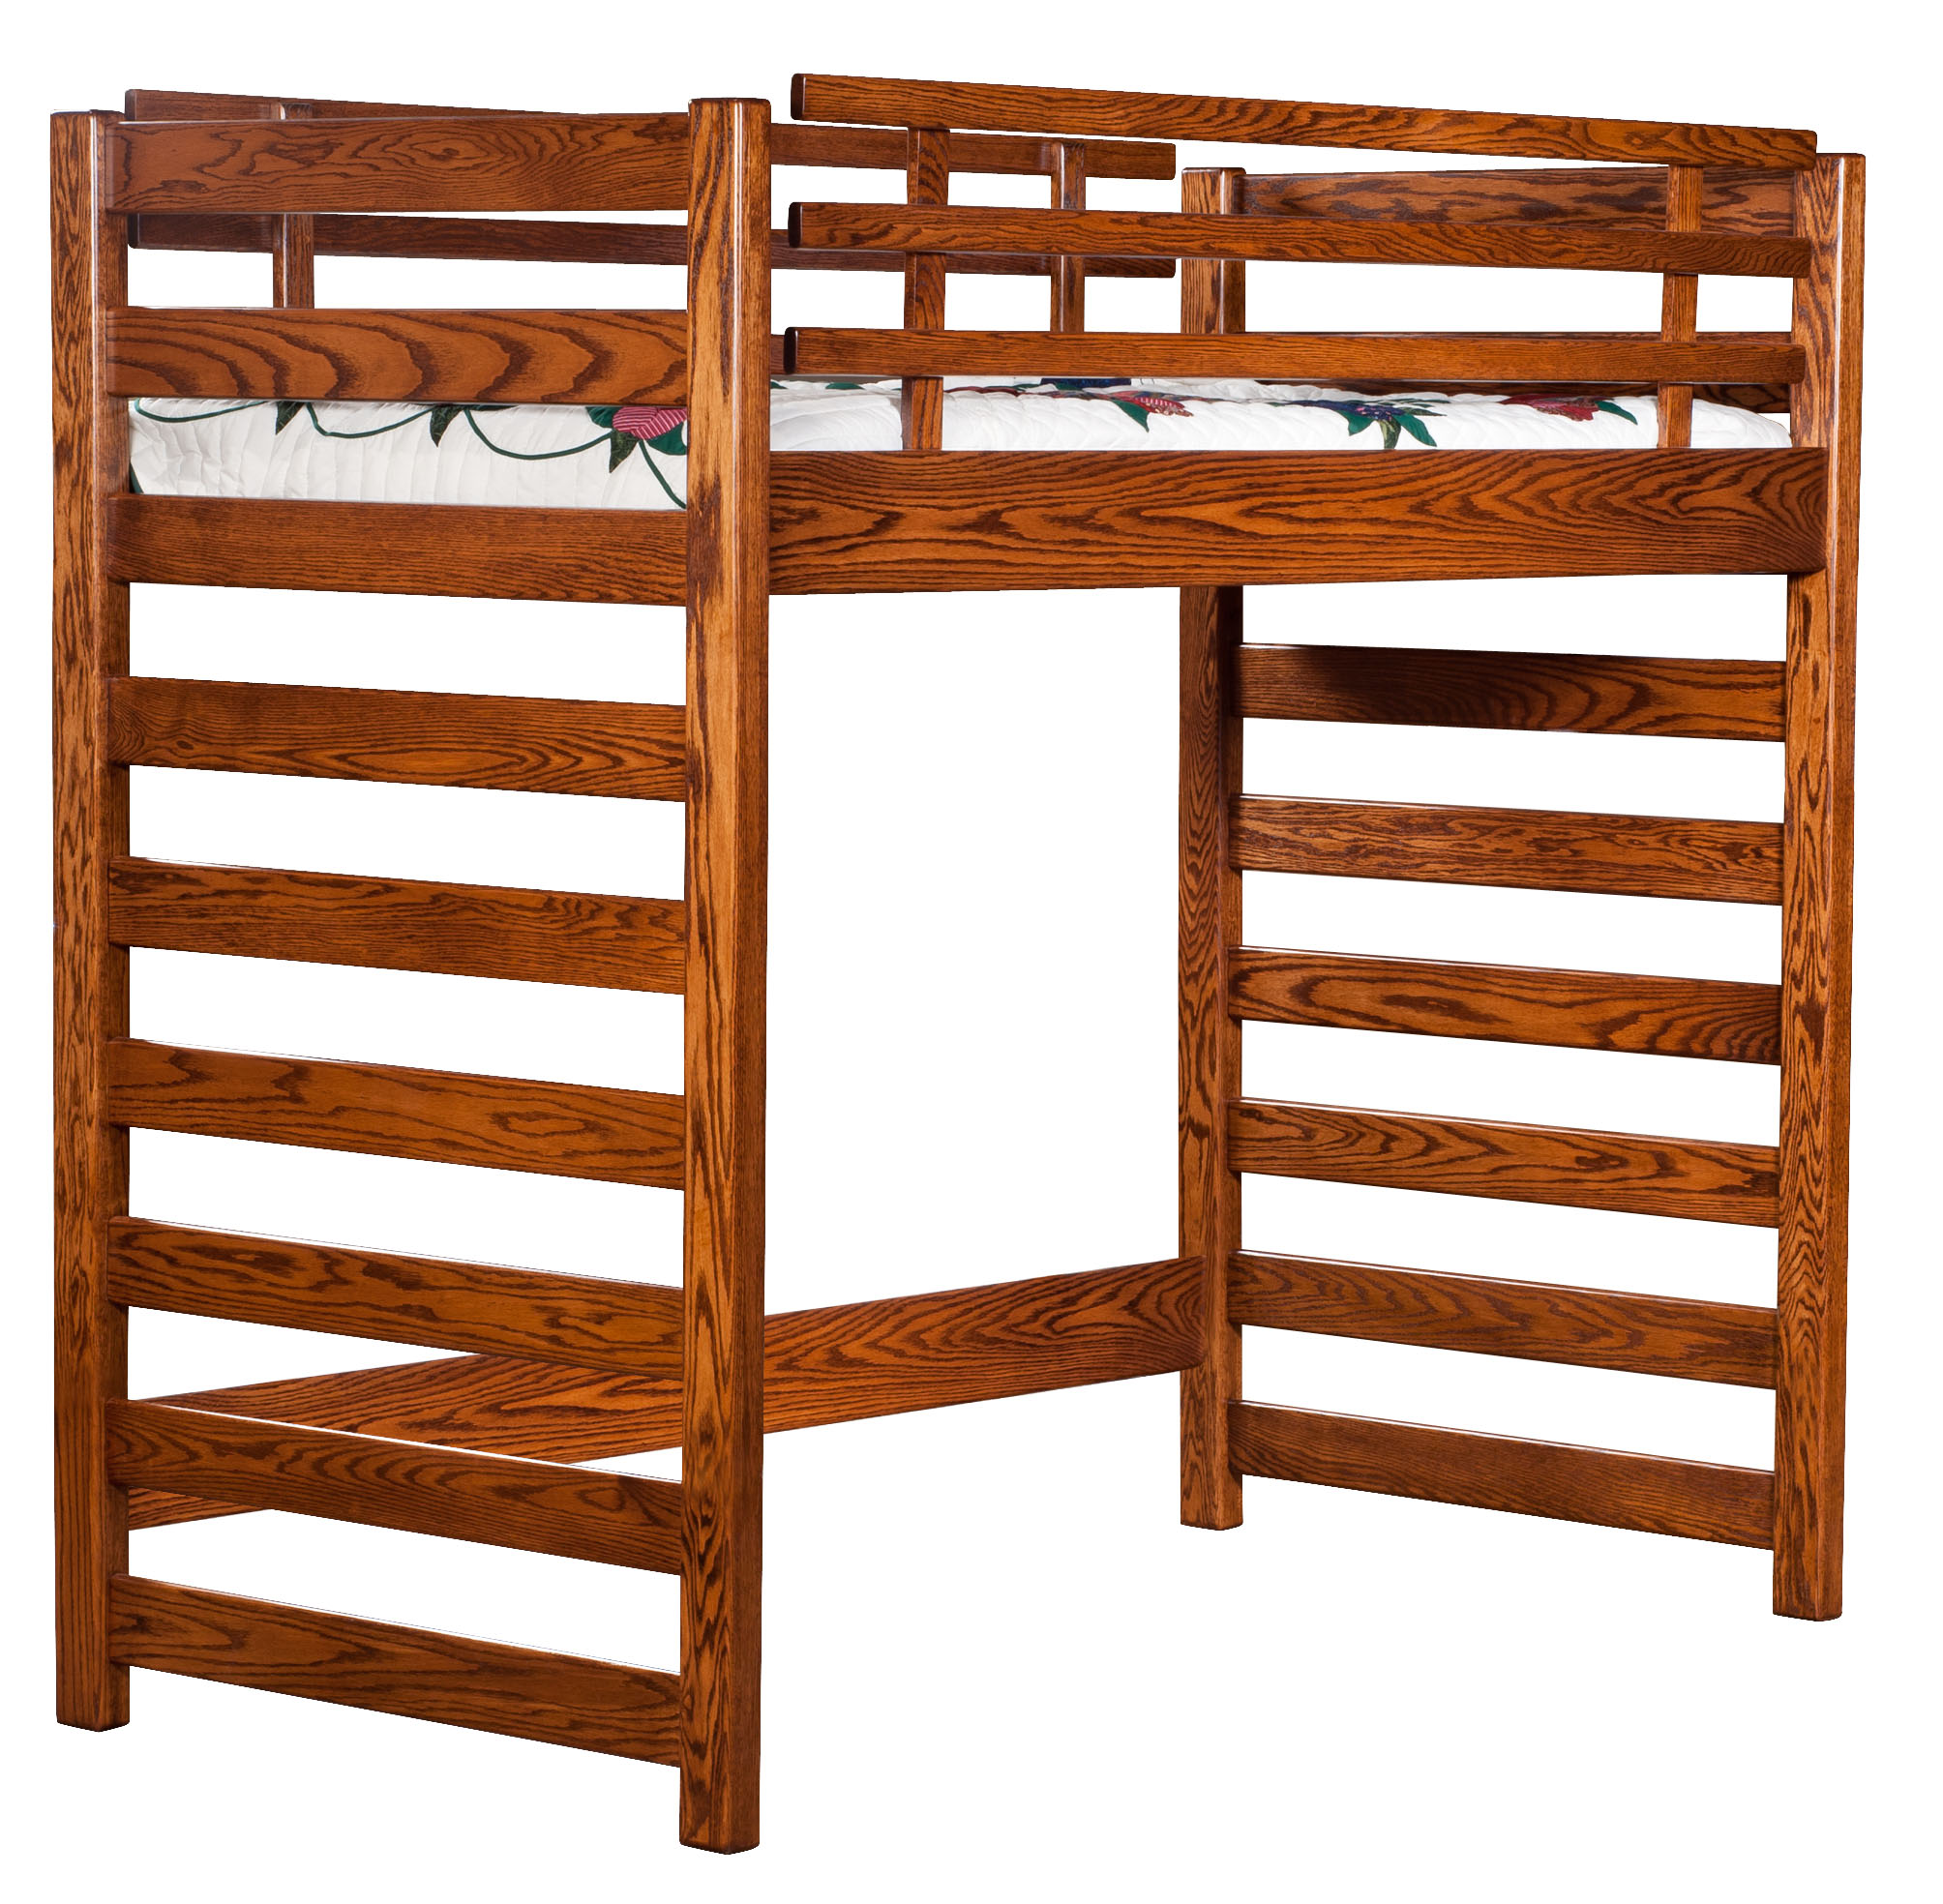 Ladder Loft Bunk Bed Amish Direct Furniture